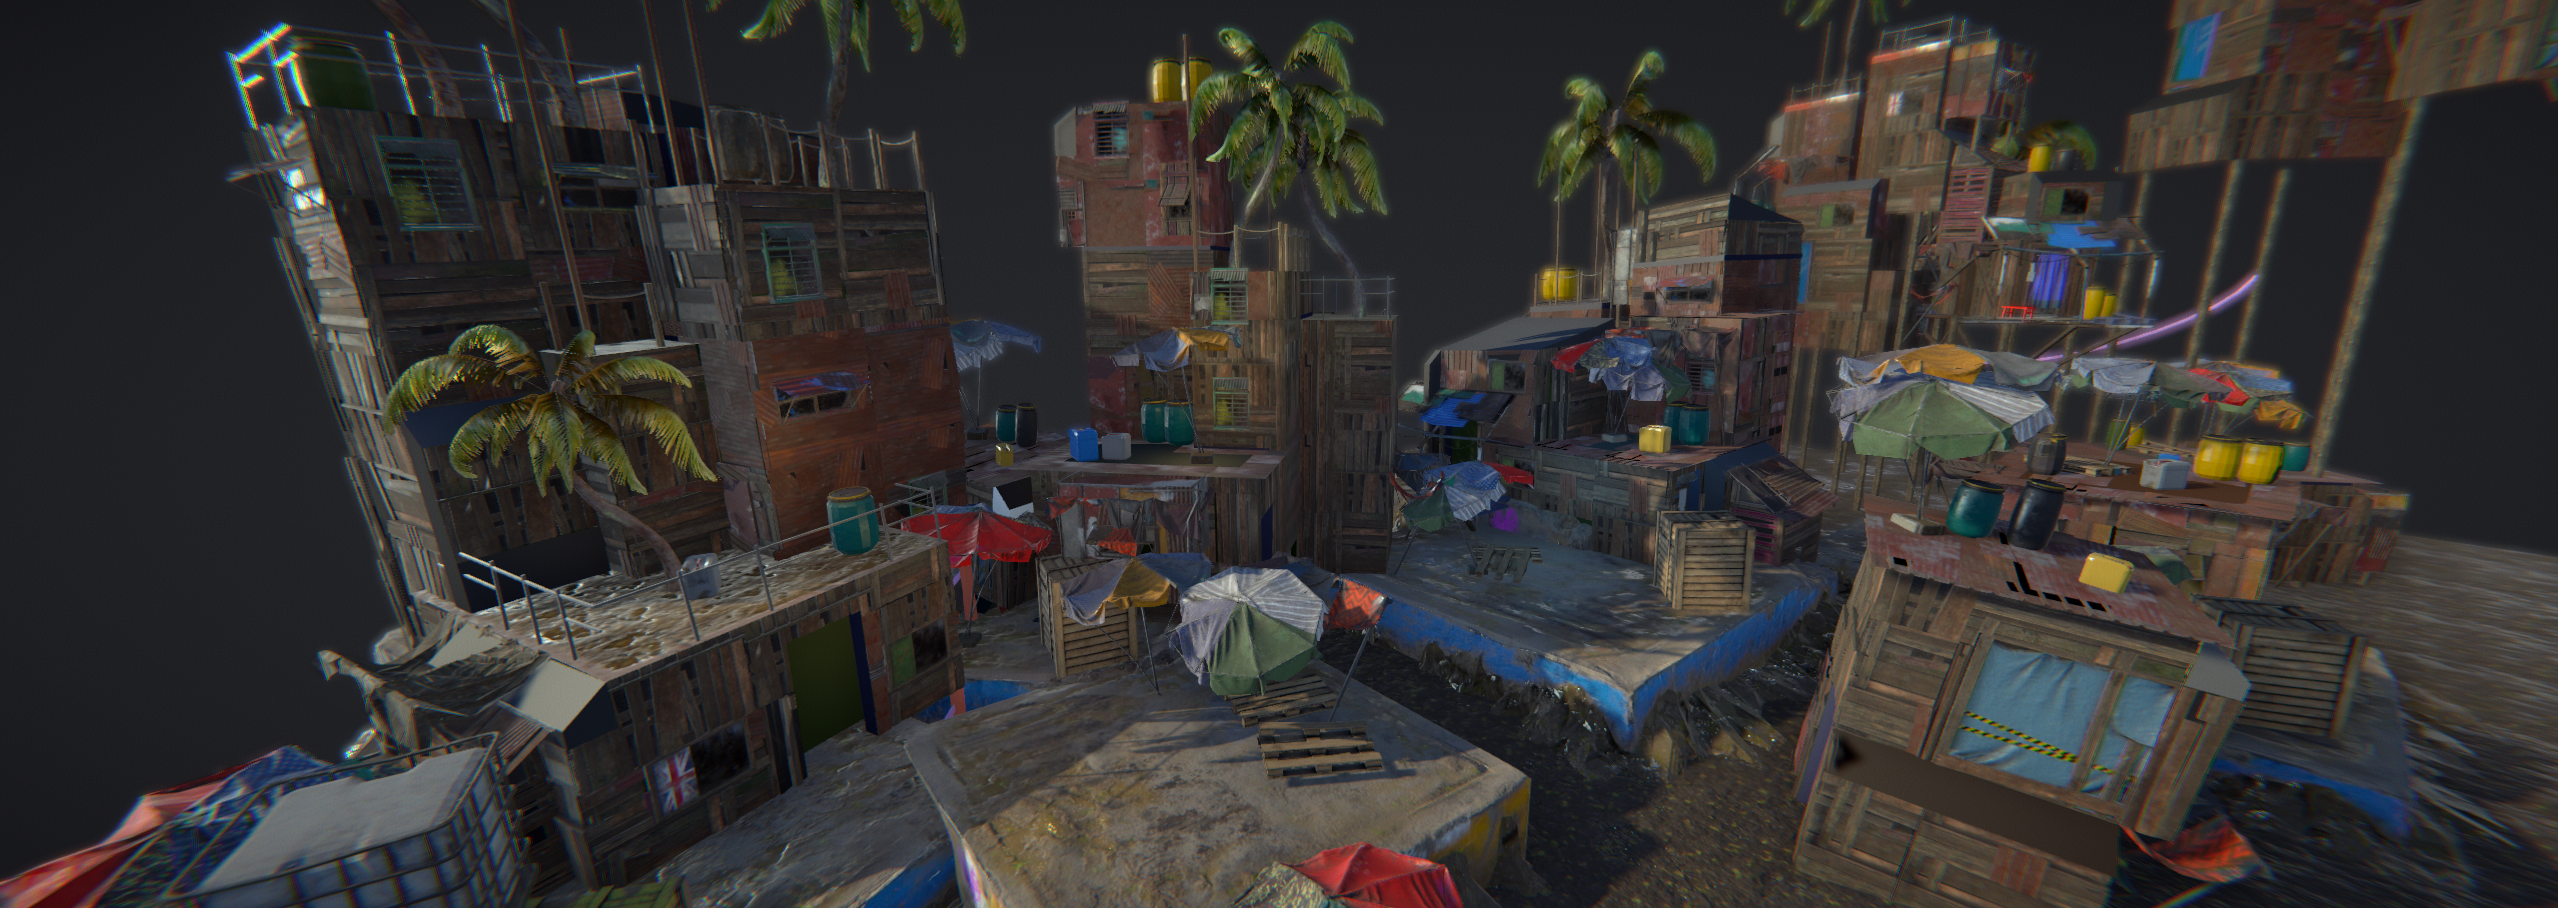 Unity] Shanty Town — polycount